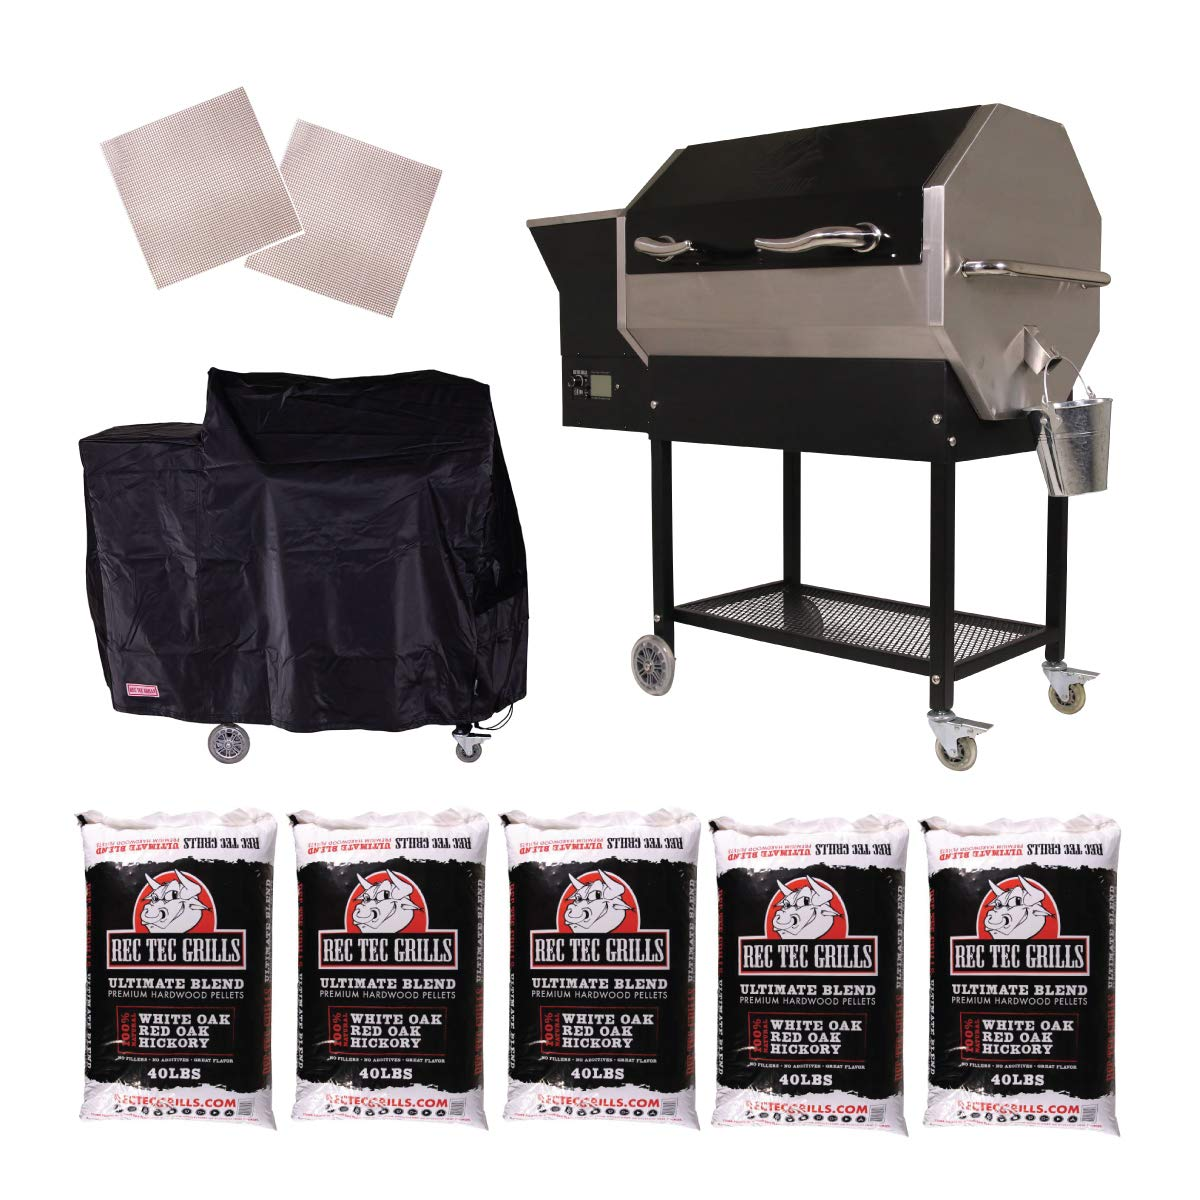 REC TEC Grills | RT-590 | Bundle | WiFi Enabled | Portable Wood Pellet Grill | Built in Meat Probes | Stainless Steel | 30lb Hopper | 4 Year Warranty | Hotflash Ceramic Ignition System by REC TEC Grills